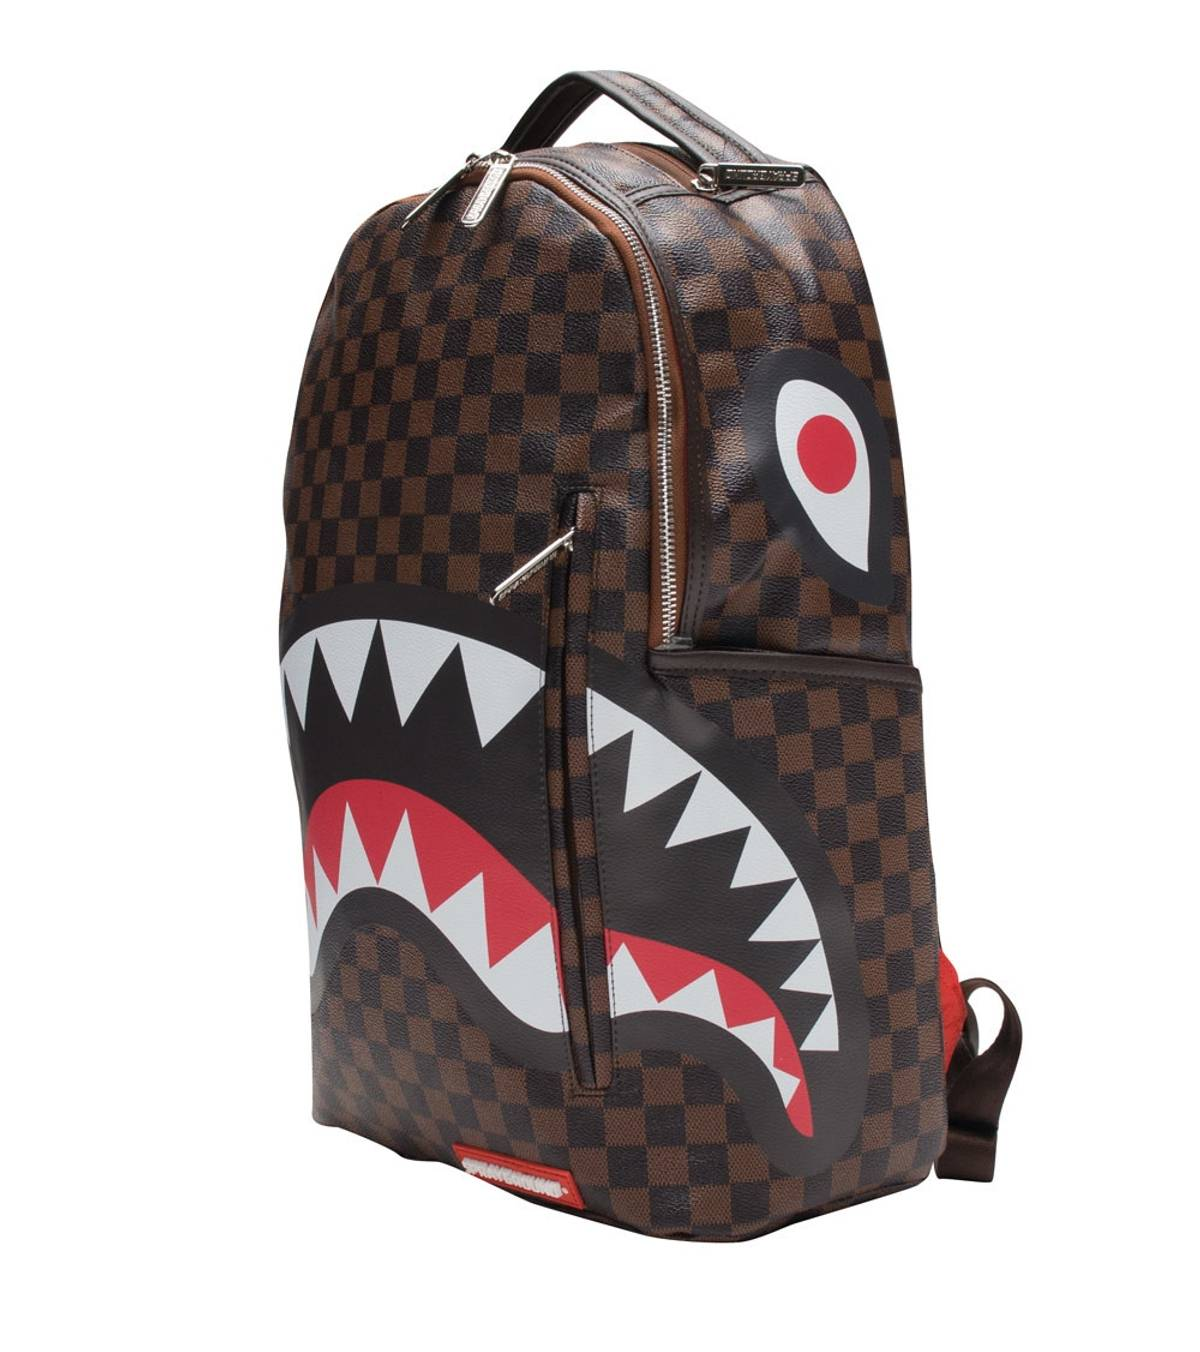 Bape Shark Backpack >> Sprayground Lv Shark In Paris Backpack Size One Size 285